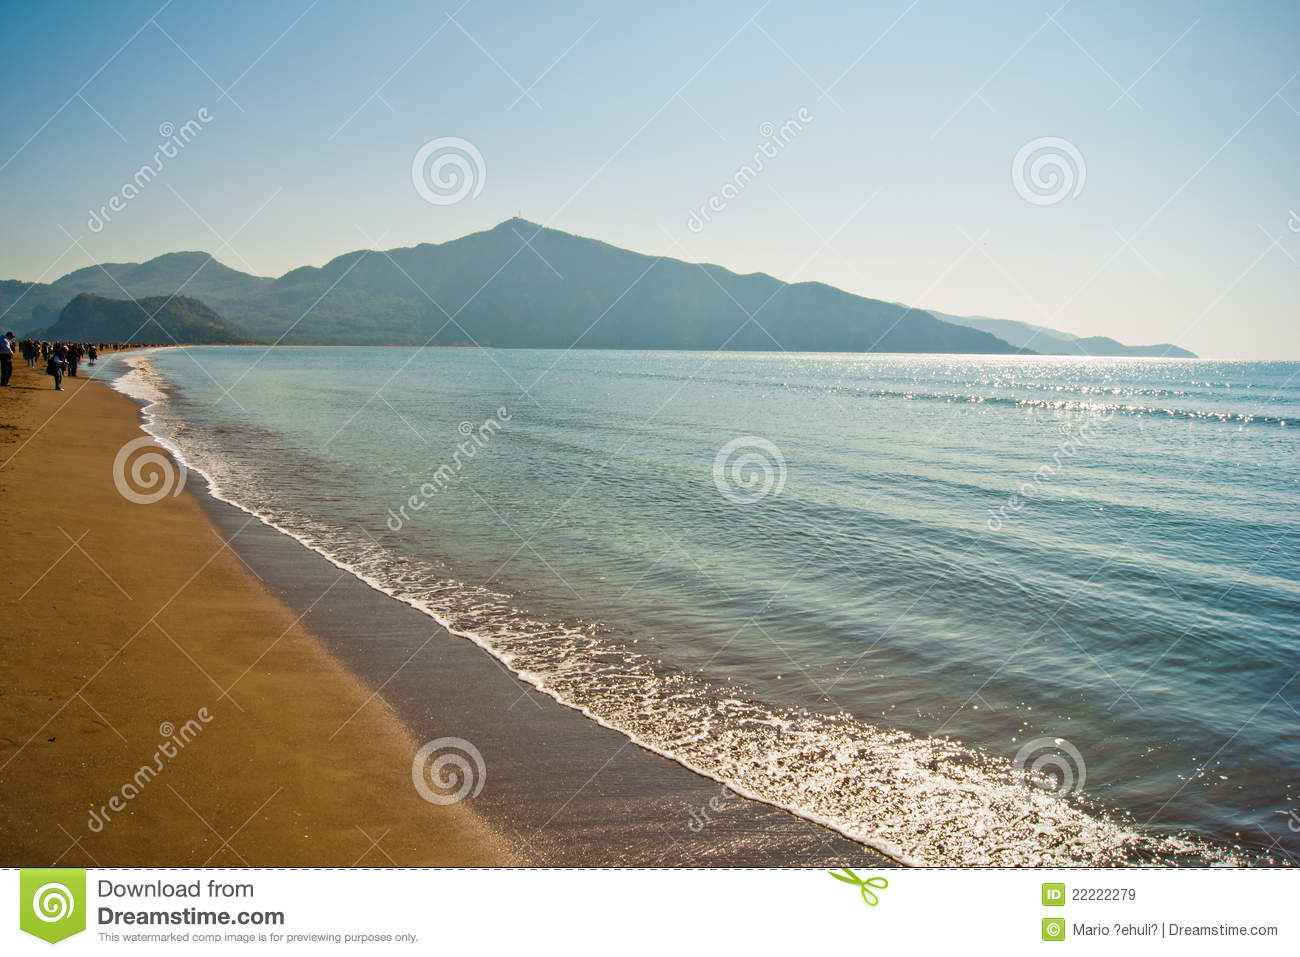 Iztuzu Beach Royalty Free Stock Images - Image: 22222279